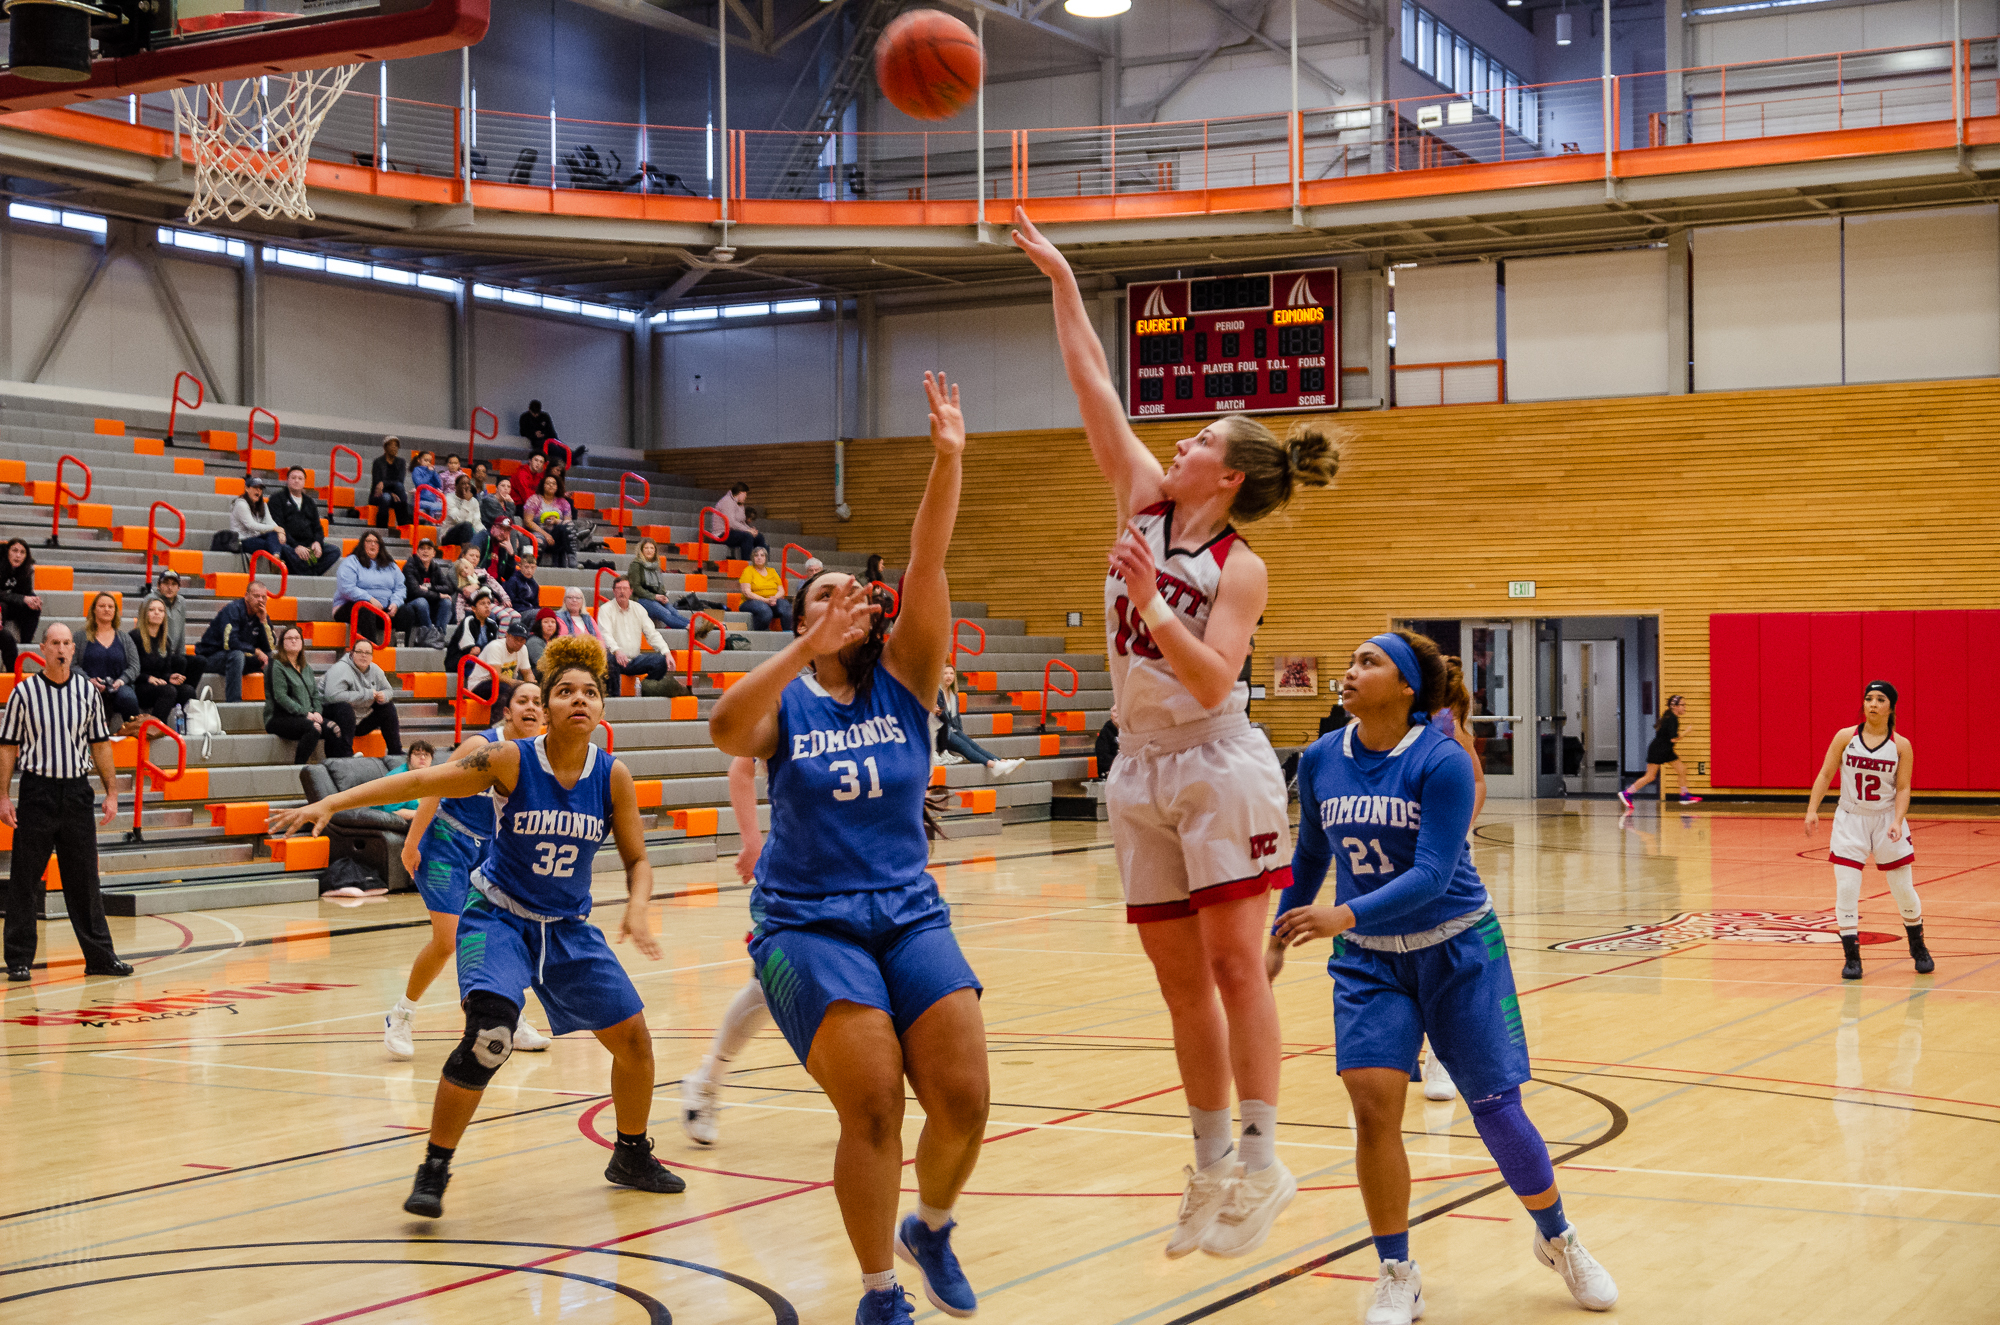 Everett's Morgan Marshall (10) goes up for a shot against Edmonds' Analiyah Matthews (31) at the Walt Price Fitness Center // Courtesy Simon Krane